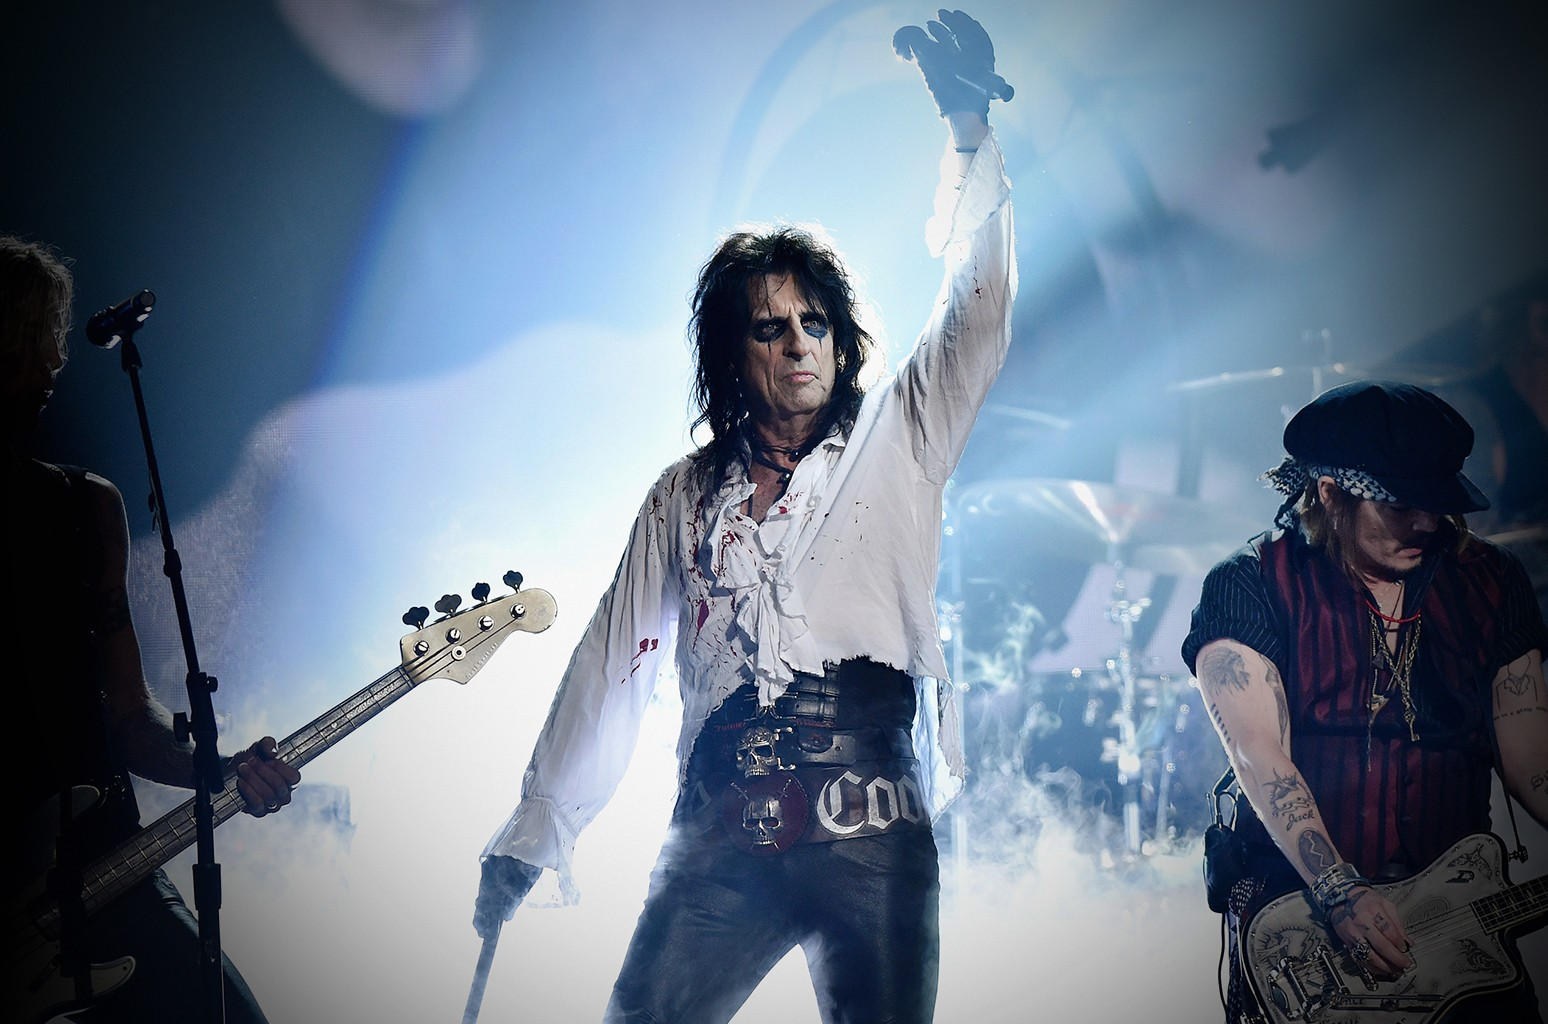 Alice Cooper performs during the 2016 Grammy Awards